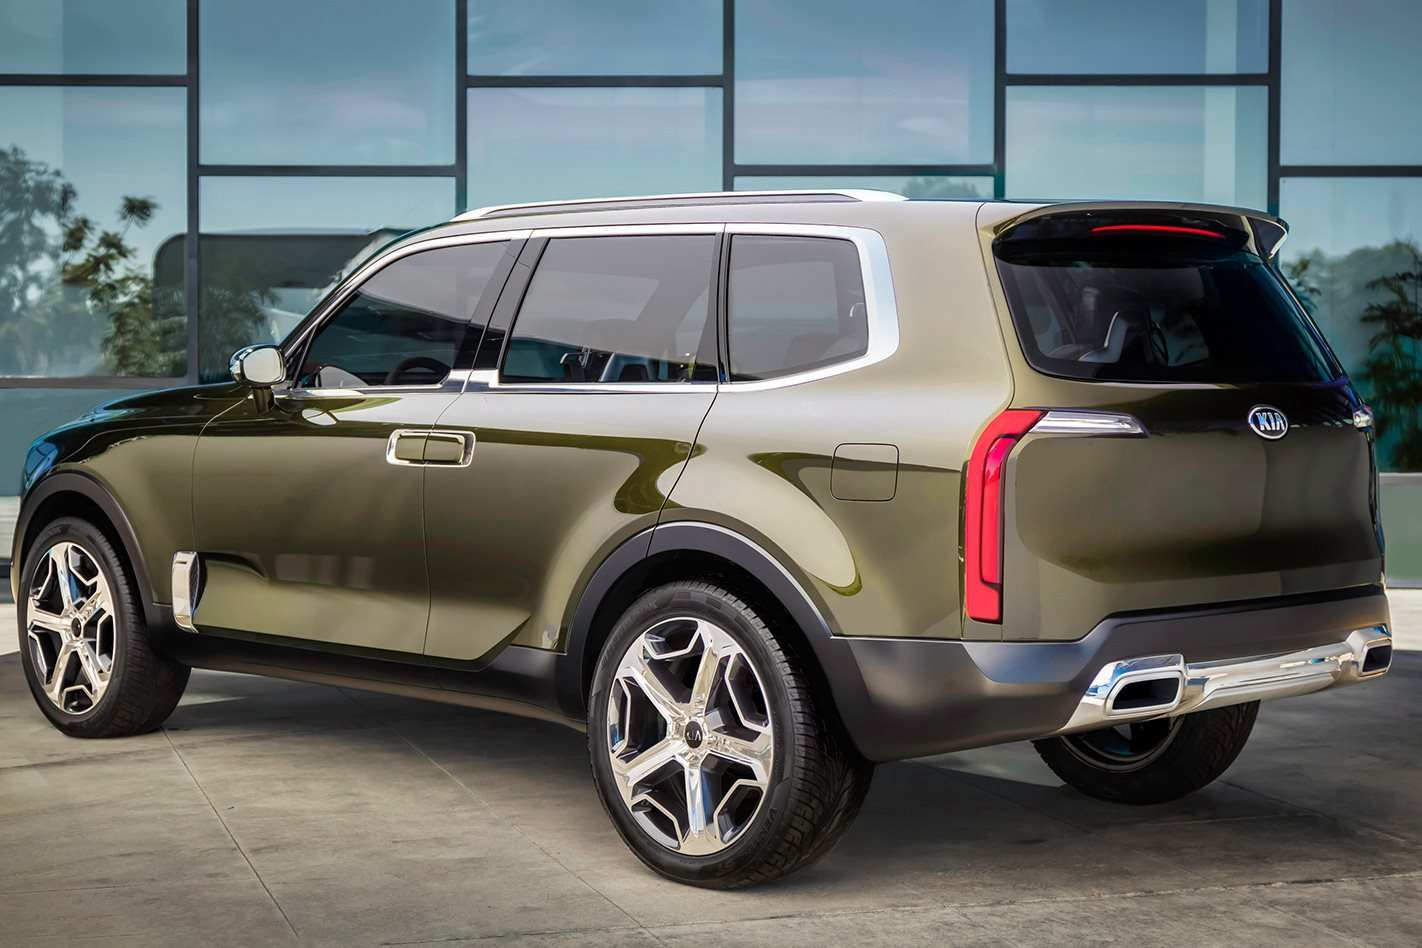 13 New 2020 Kia Telluride Australia Performance for 2020 Kia Telluride Australia